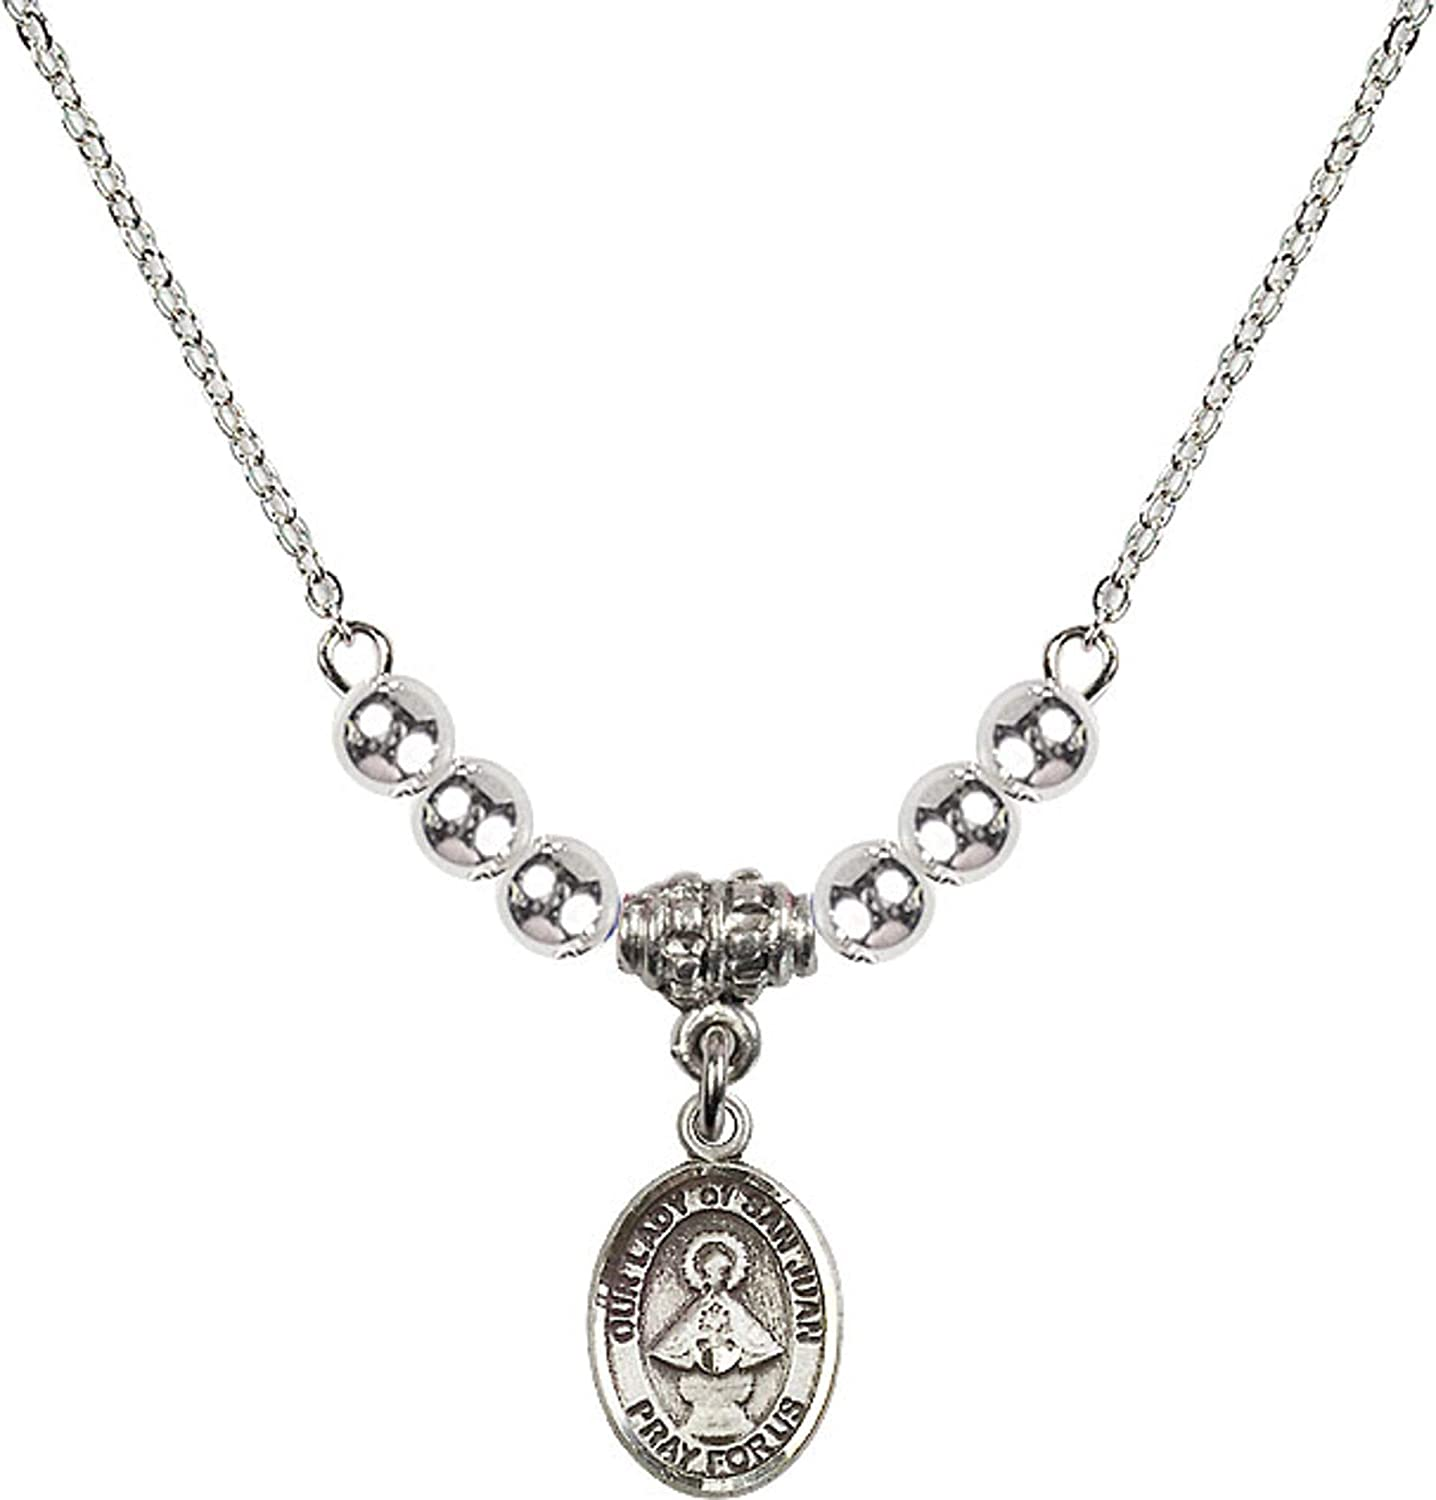 Bonyak Jewelry 18 Inch Rhodium Plated Necklace w// 4mm Sterling Silver Beads and Our Lady of San Juan Charm